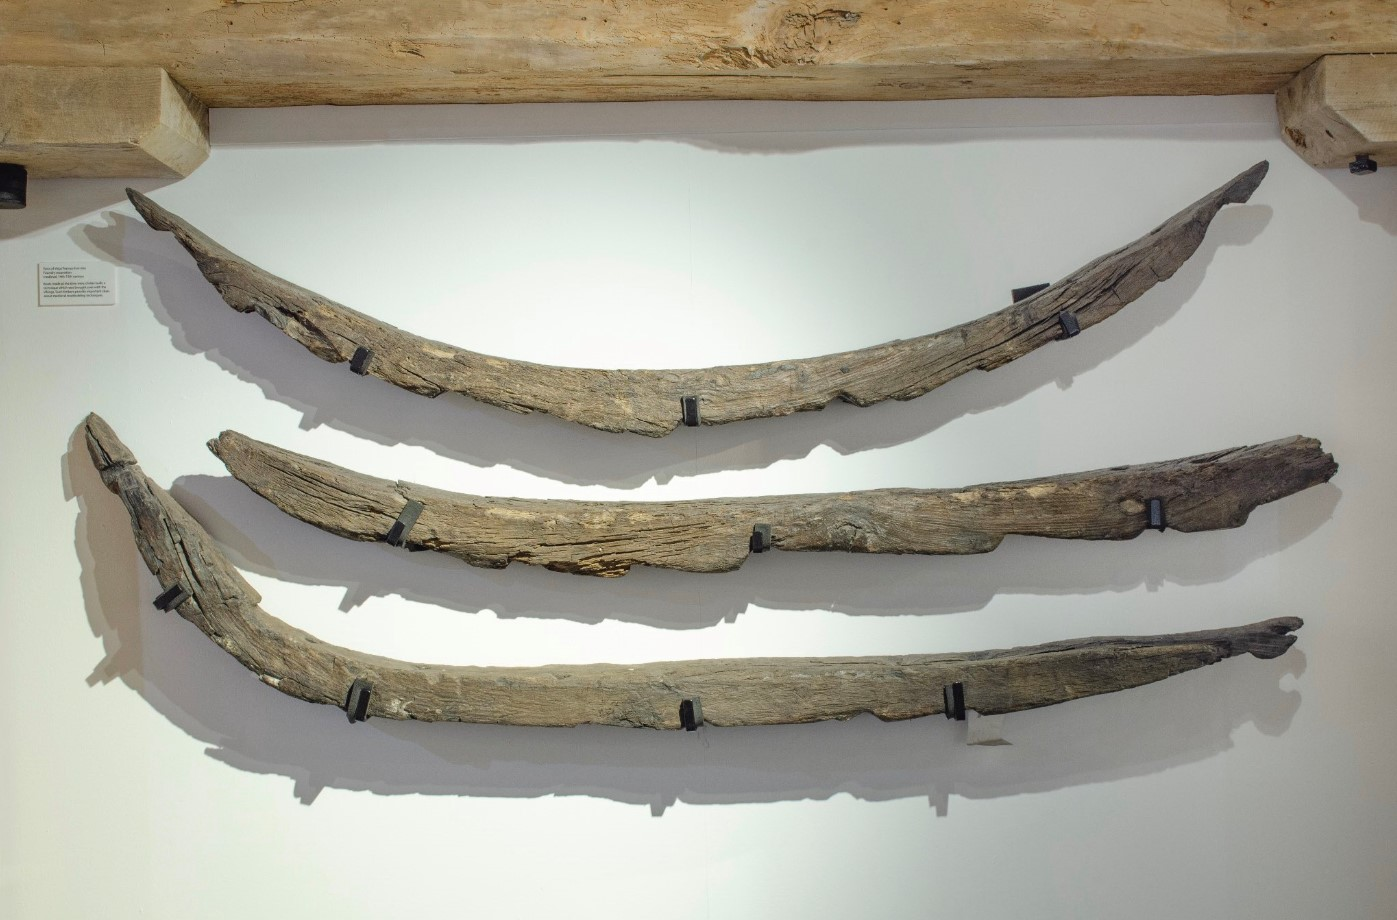 Timbers recovered from the medieval boatyard